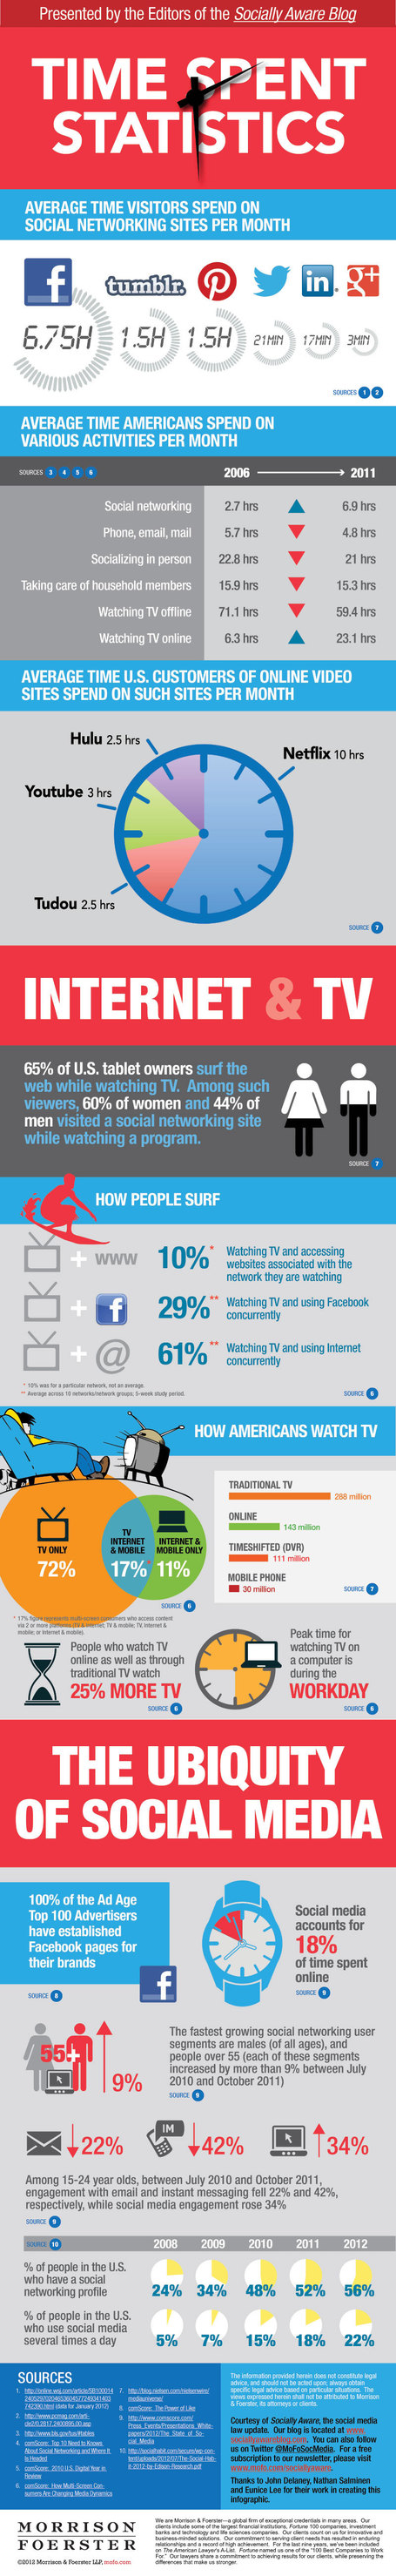 The Growing Impact of Social Media #infographic | Wiki_Universe | Scoop.it